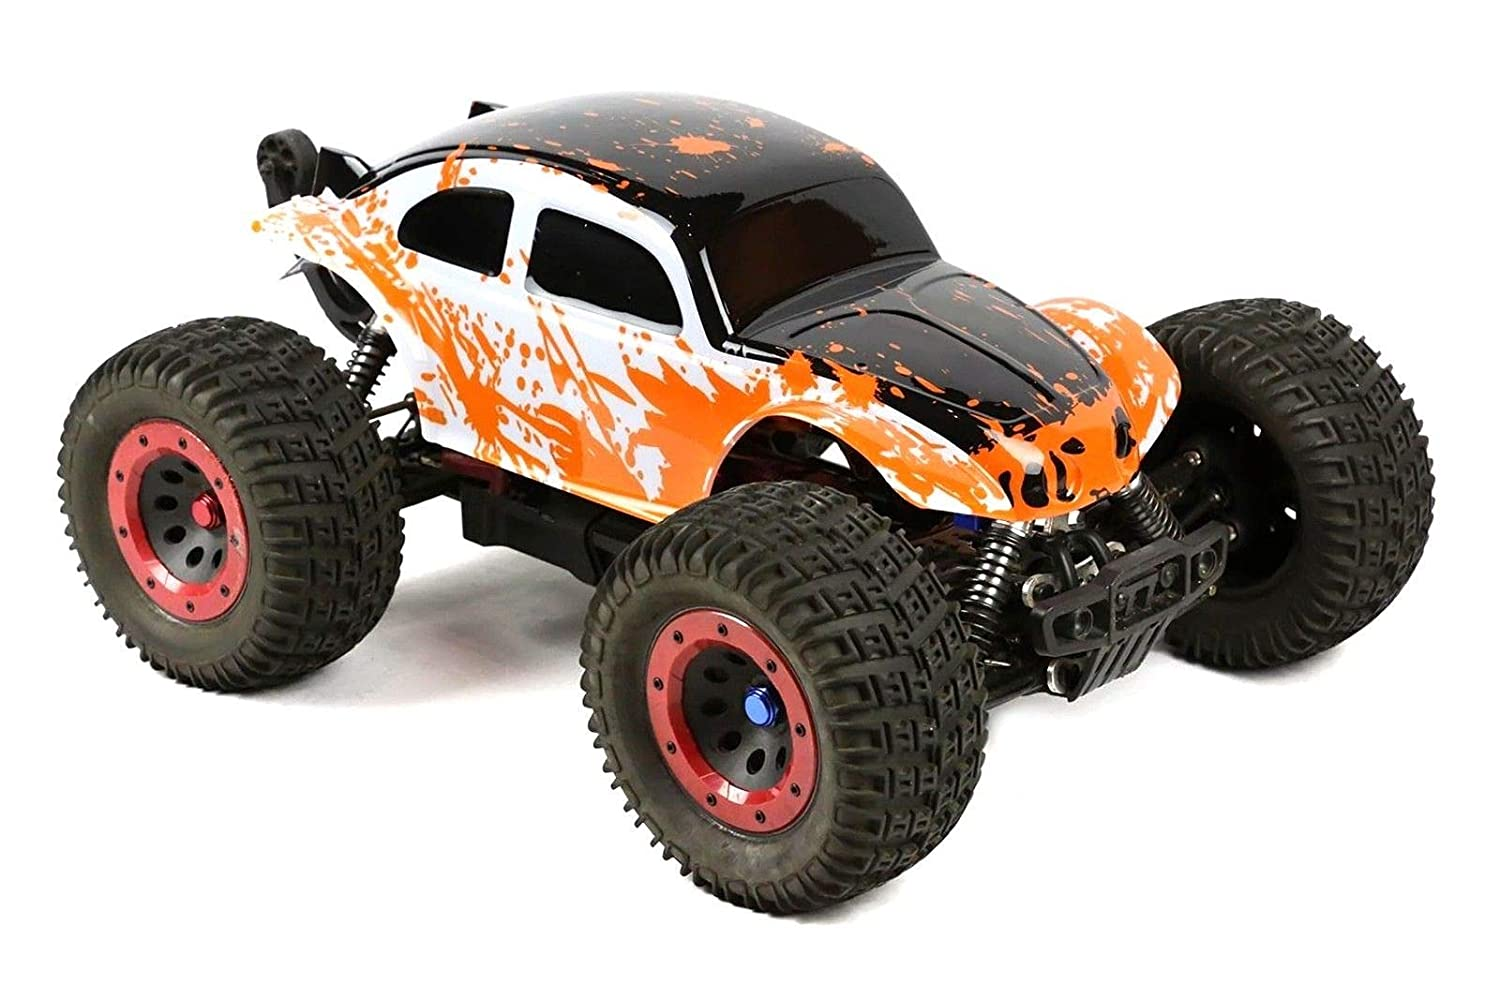 SummitLink Compatible Custom Body Muddy Orange Over White//Black Replacement for 1//10 1//8 Scale RC Car or Truck B-BWR-02 Truck not Included